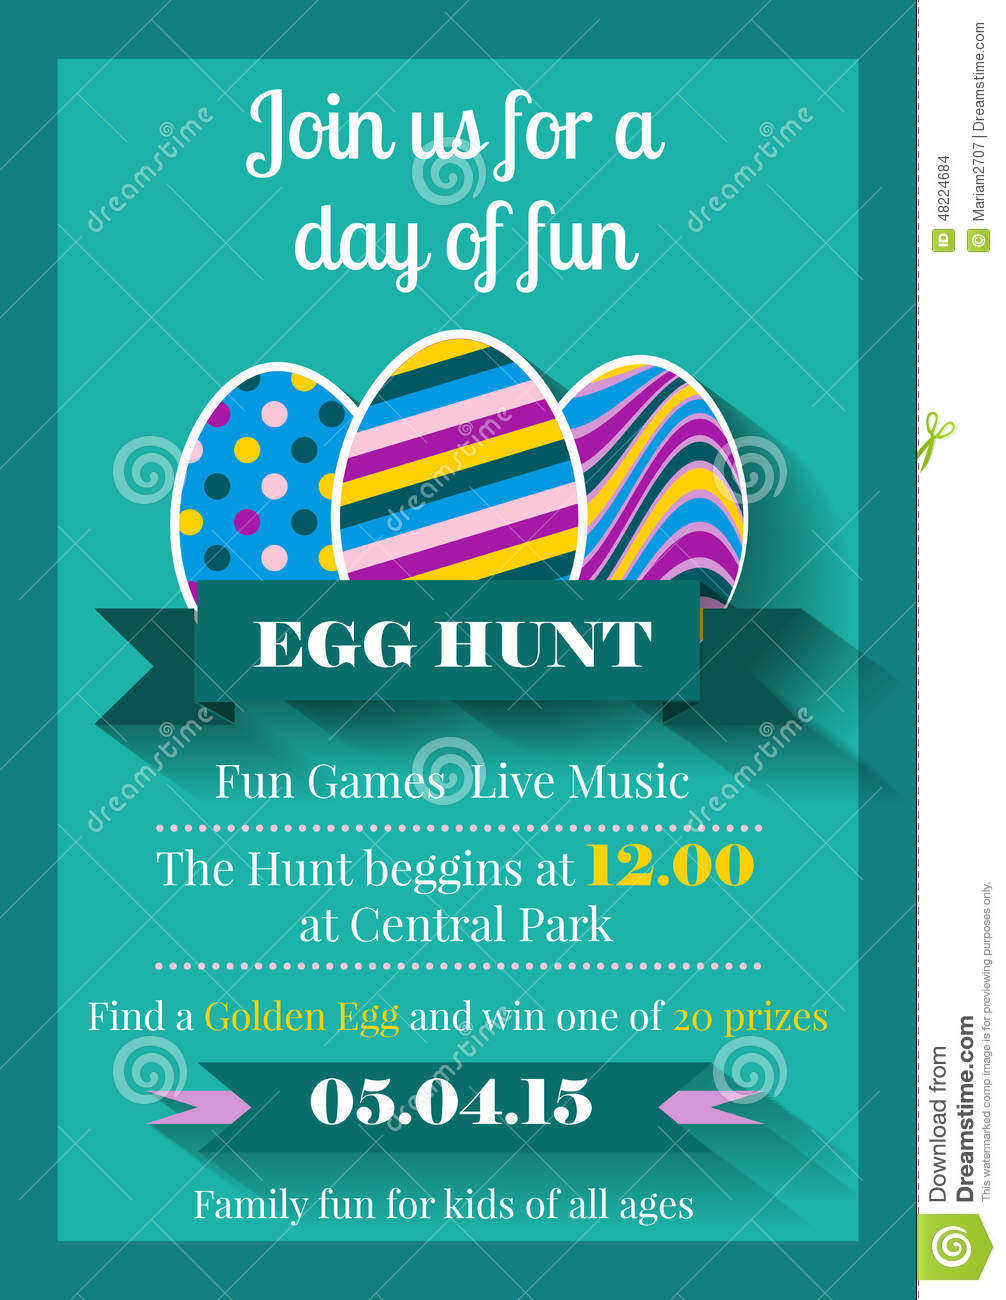 Celebrate It Invitation Templates is good invitations layout